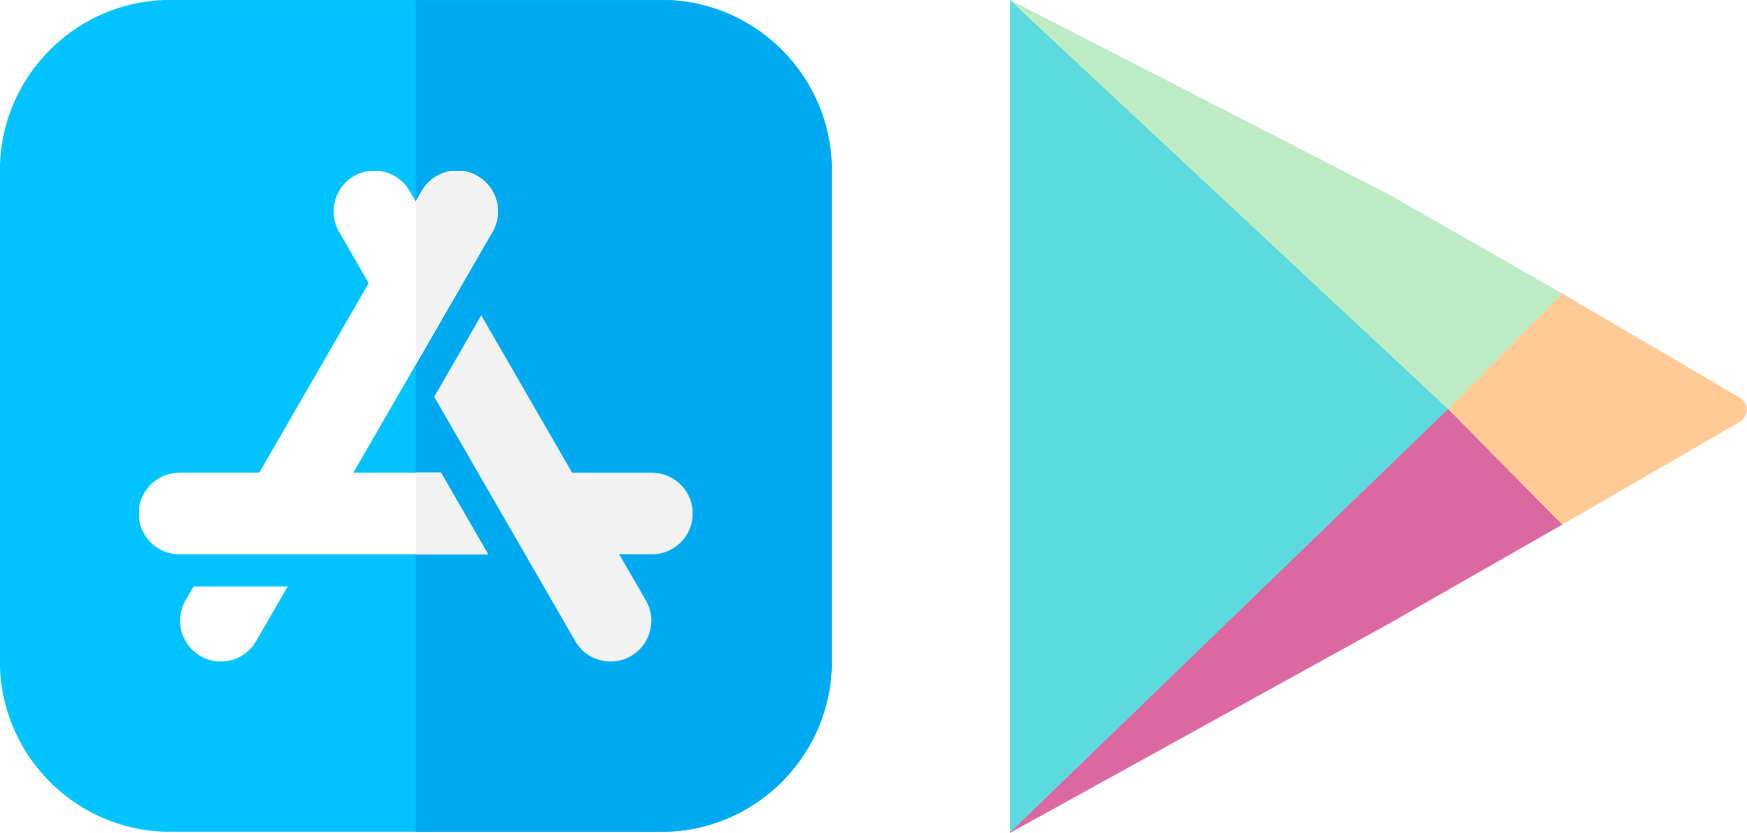 App Store PNG Logo, Apple Store (iOS) Icon Free Download.